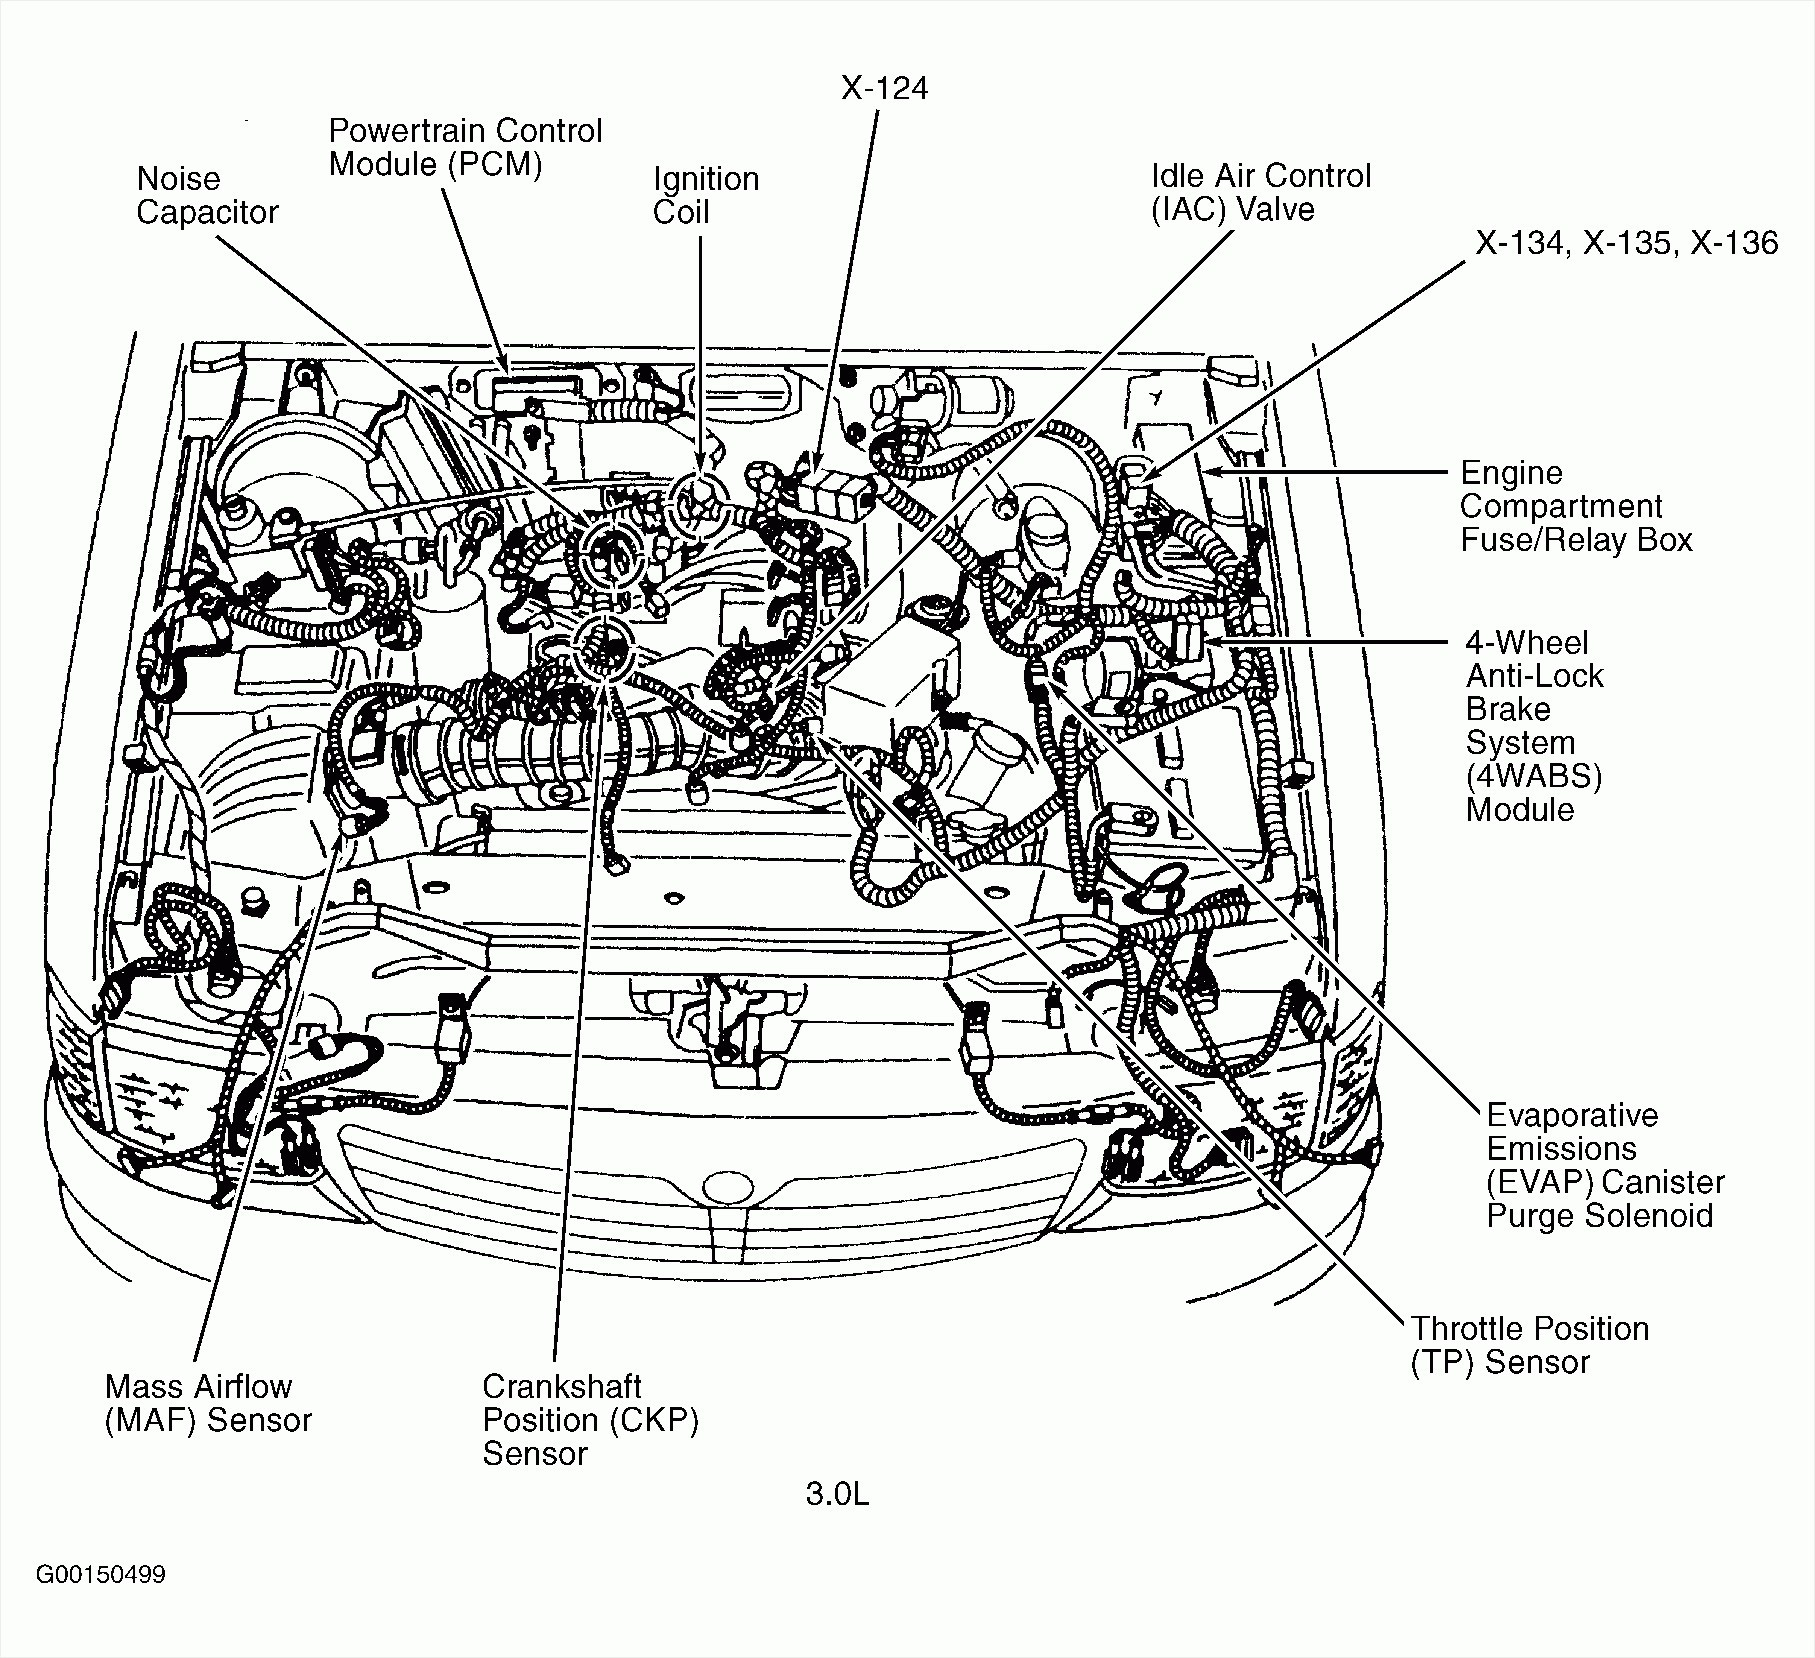 hyundai 3 8l v6 engine diagram everything you need to know about rh newsnanalysis co